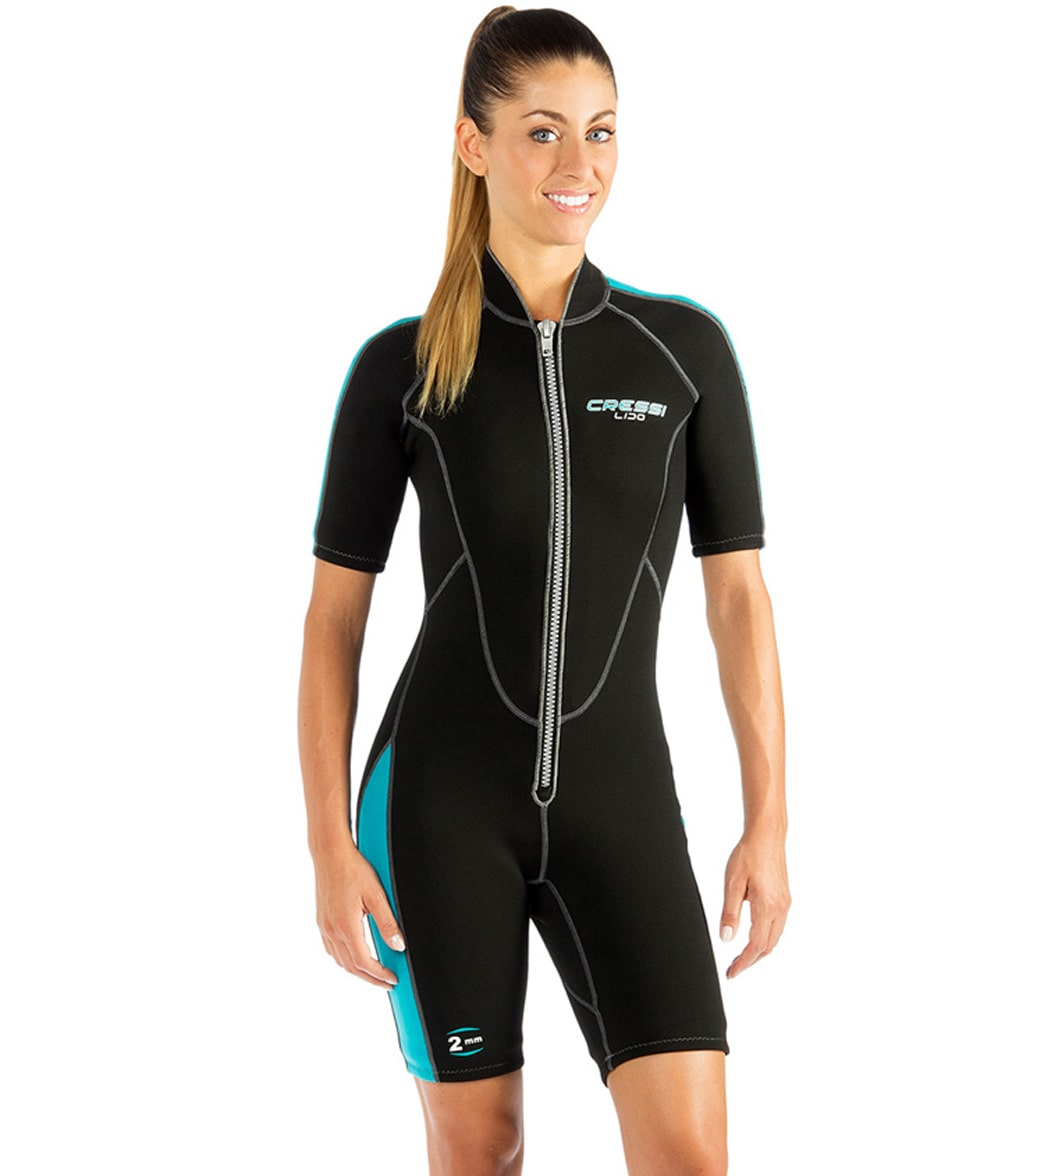 9af61a8a23 Cressi Women s 2mm Lido Shorty Wetsuit at SwimOutlet.com - Free Shipping